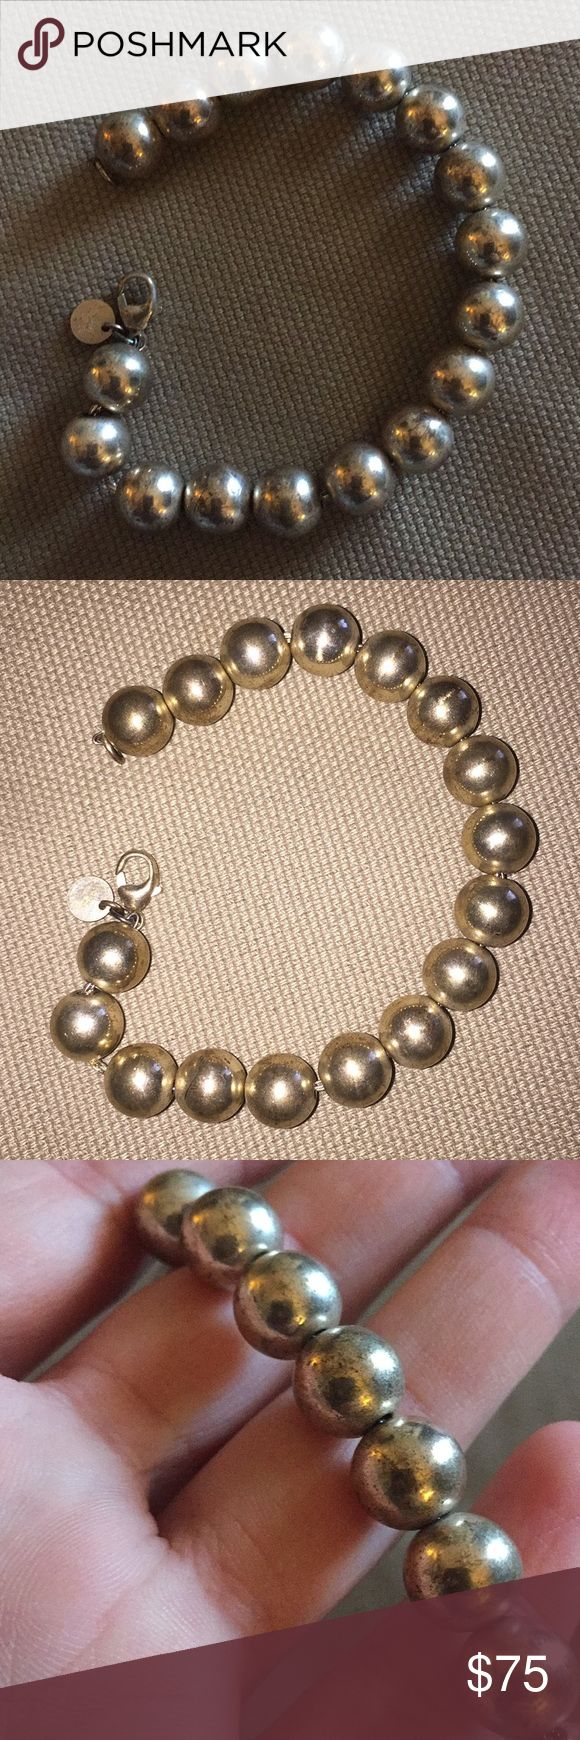 """Tiffany & Co Ball (bead) bracelet Silver authentic Tiffany & Co bracelet. Definitely needs to be cleaned! Please examine the pictures closely as the beads look somewhat distressed or faded. That's why I'm listing it at this low price! 7.5""""  I got it as a bridesmaid gift and only wore it for the wedding! It's been in my jewelry box ever since. Tiffany & Co. Jewelry Bracelets"""